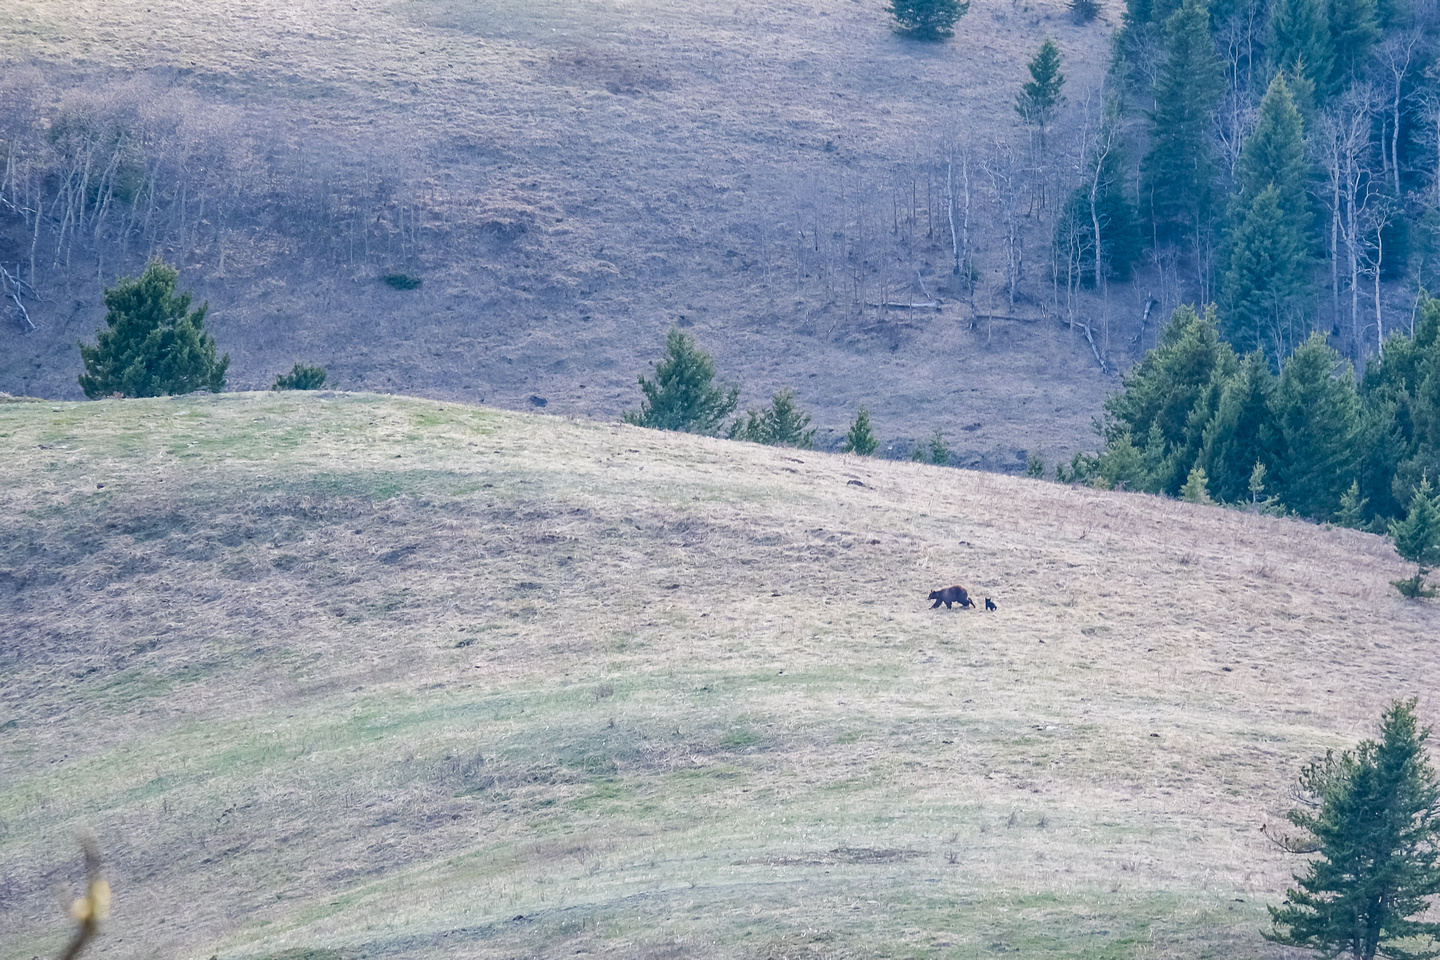 A mamma grizzly and her two cubs just west of Black Mountain.